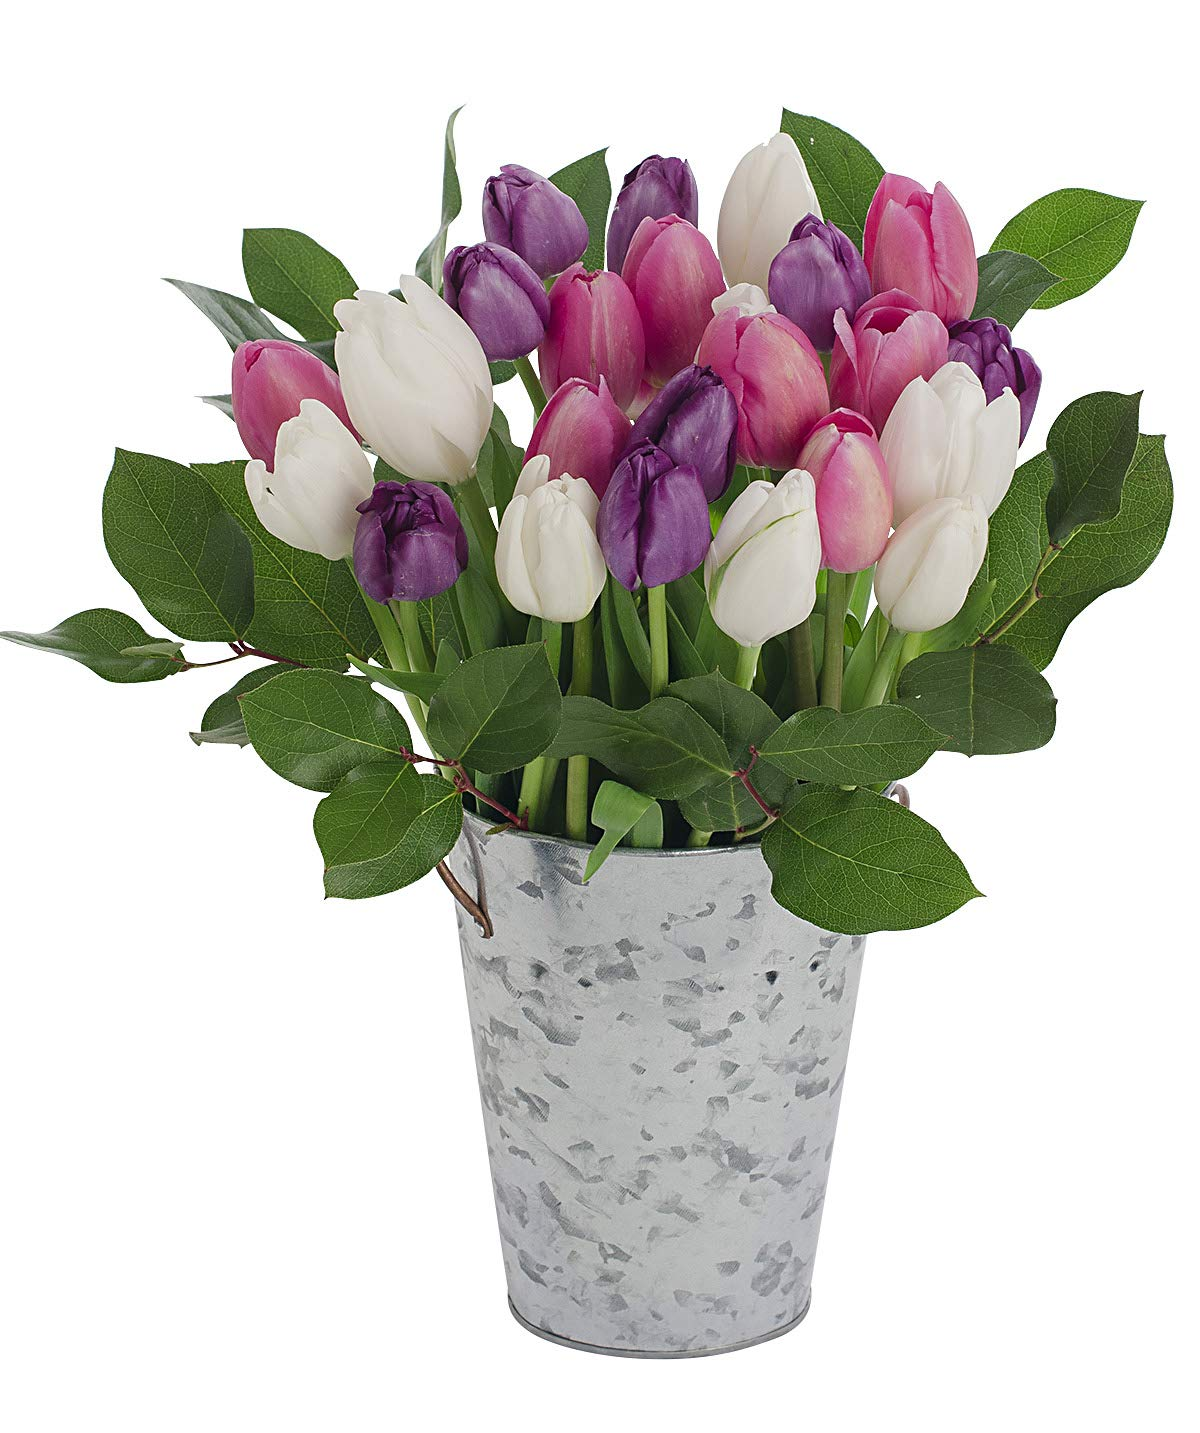 Stargazer Barn Big Flirt Bouquet 2 Dozen Assorted Pink White & Purple Tulips with French Bucket Style Vase by Stargazer Barn